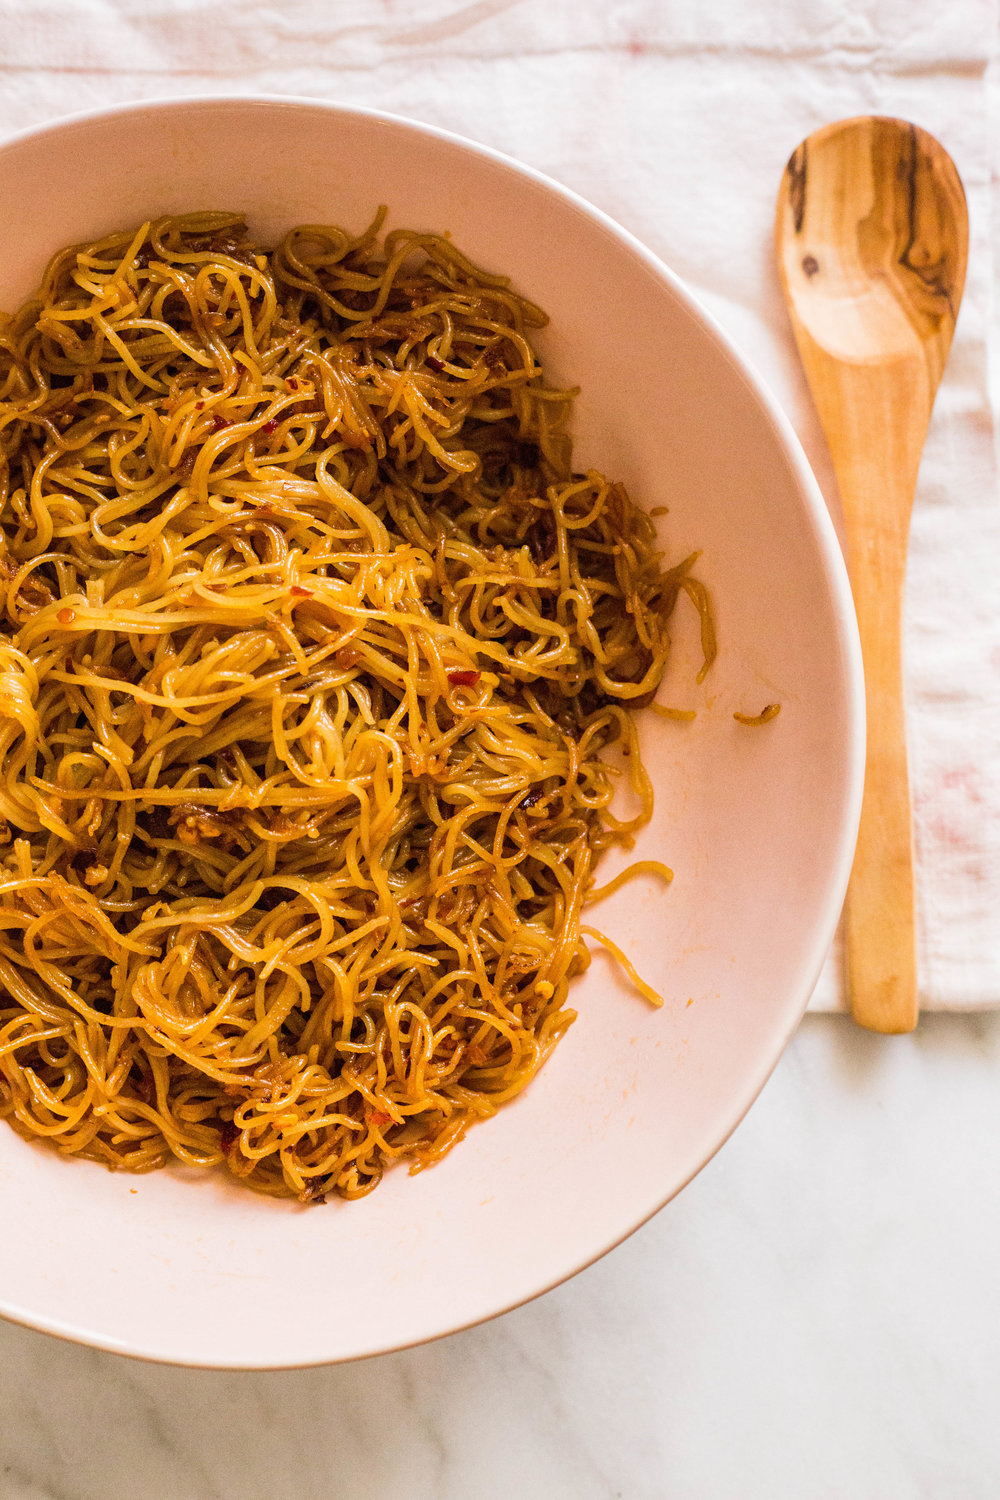 to-die-for sautéed noodles [vegan & gf]